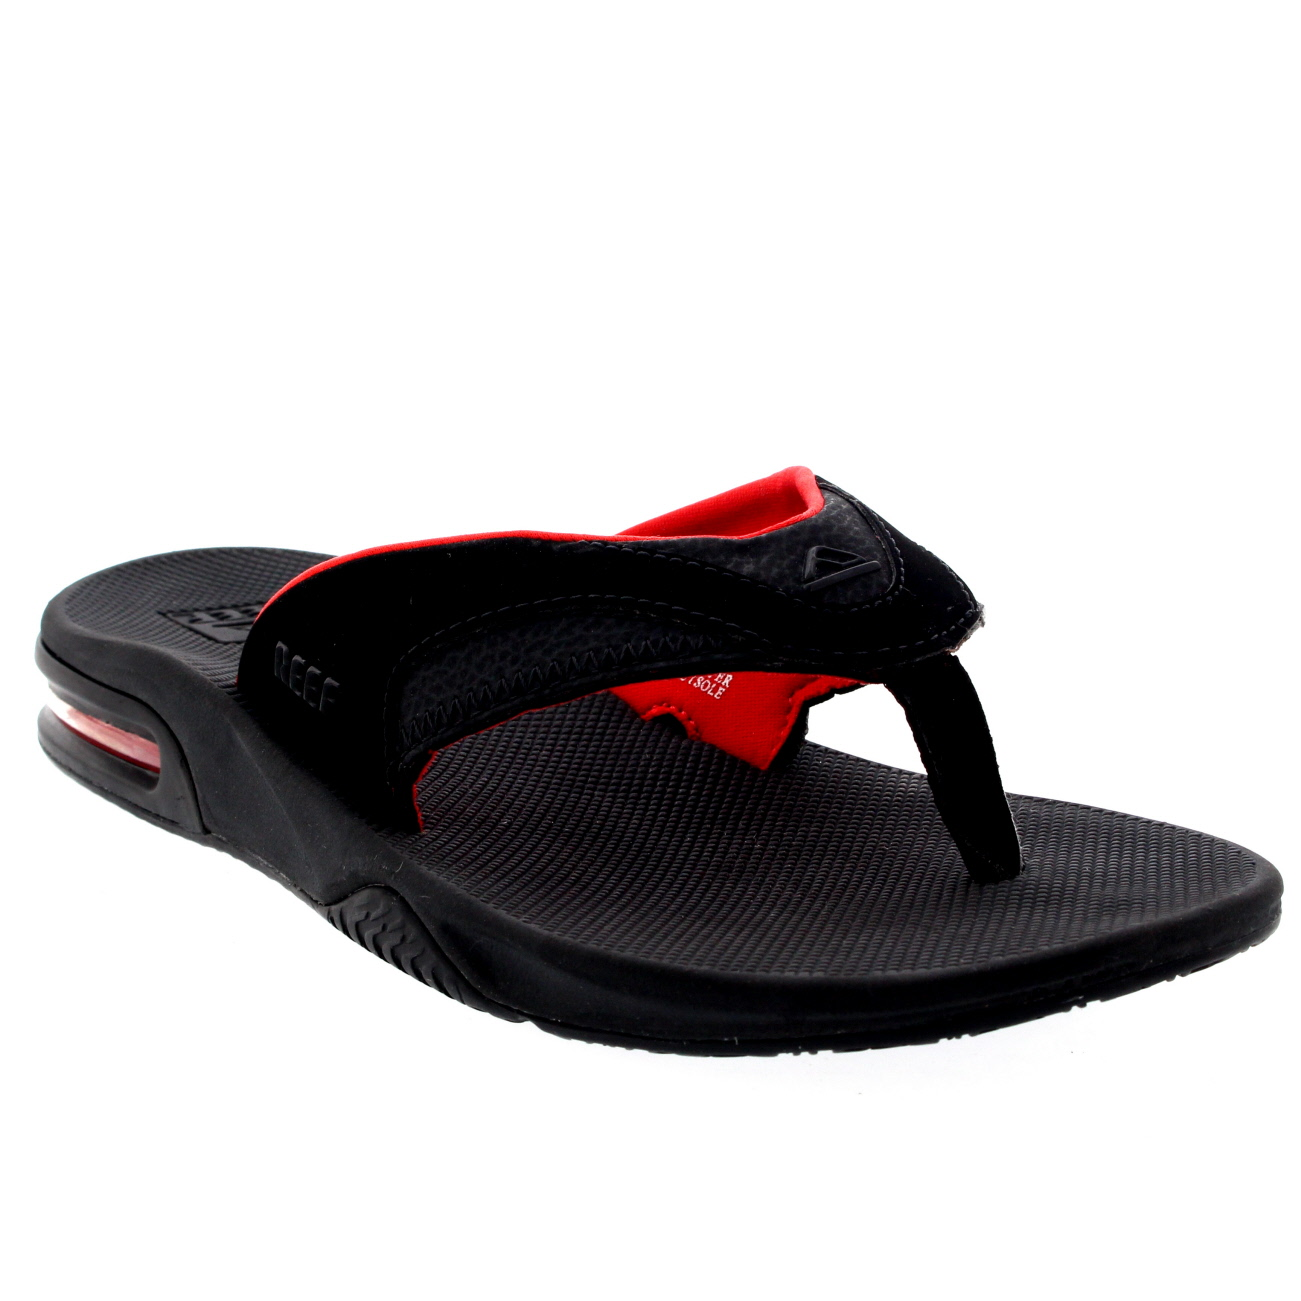 Mens Reef Fanning Church Key Beach Surfing Summer Holiday Flip Flops UK 7-12